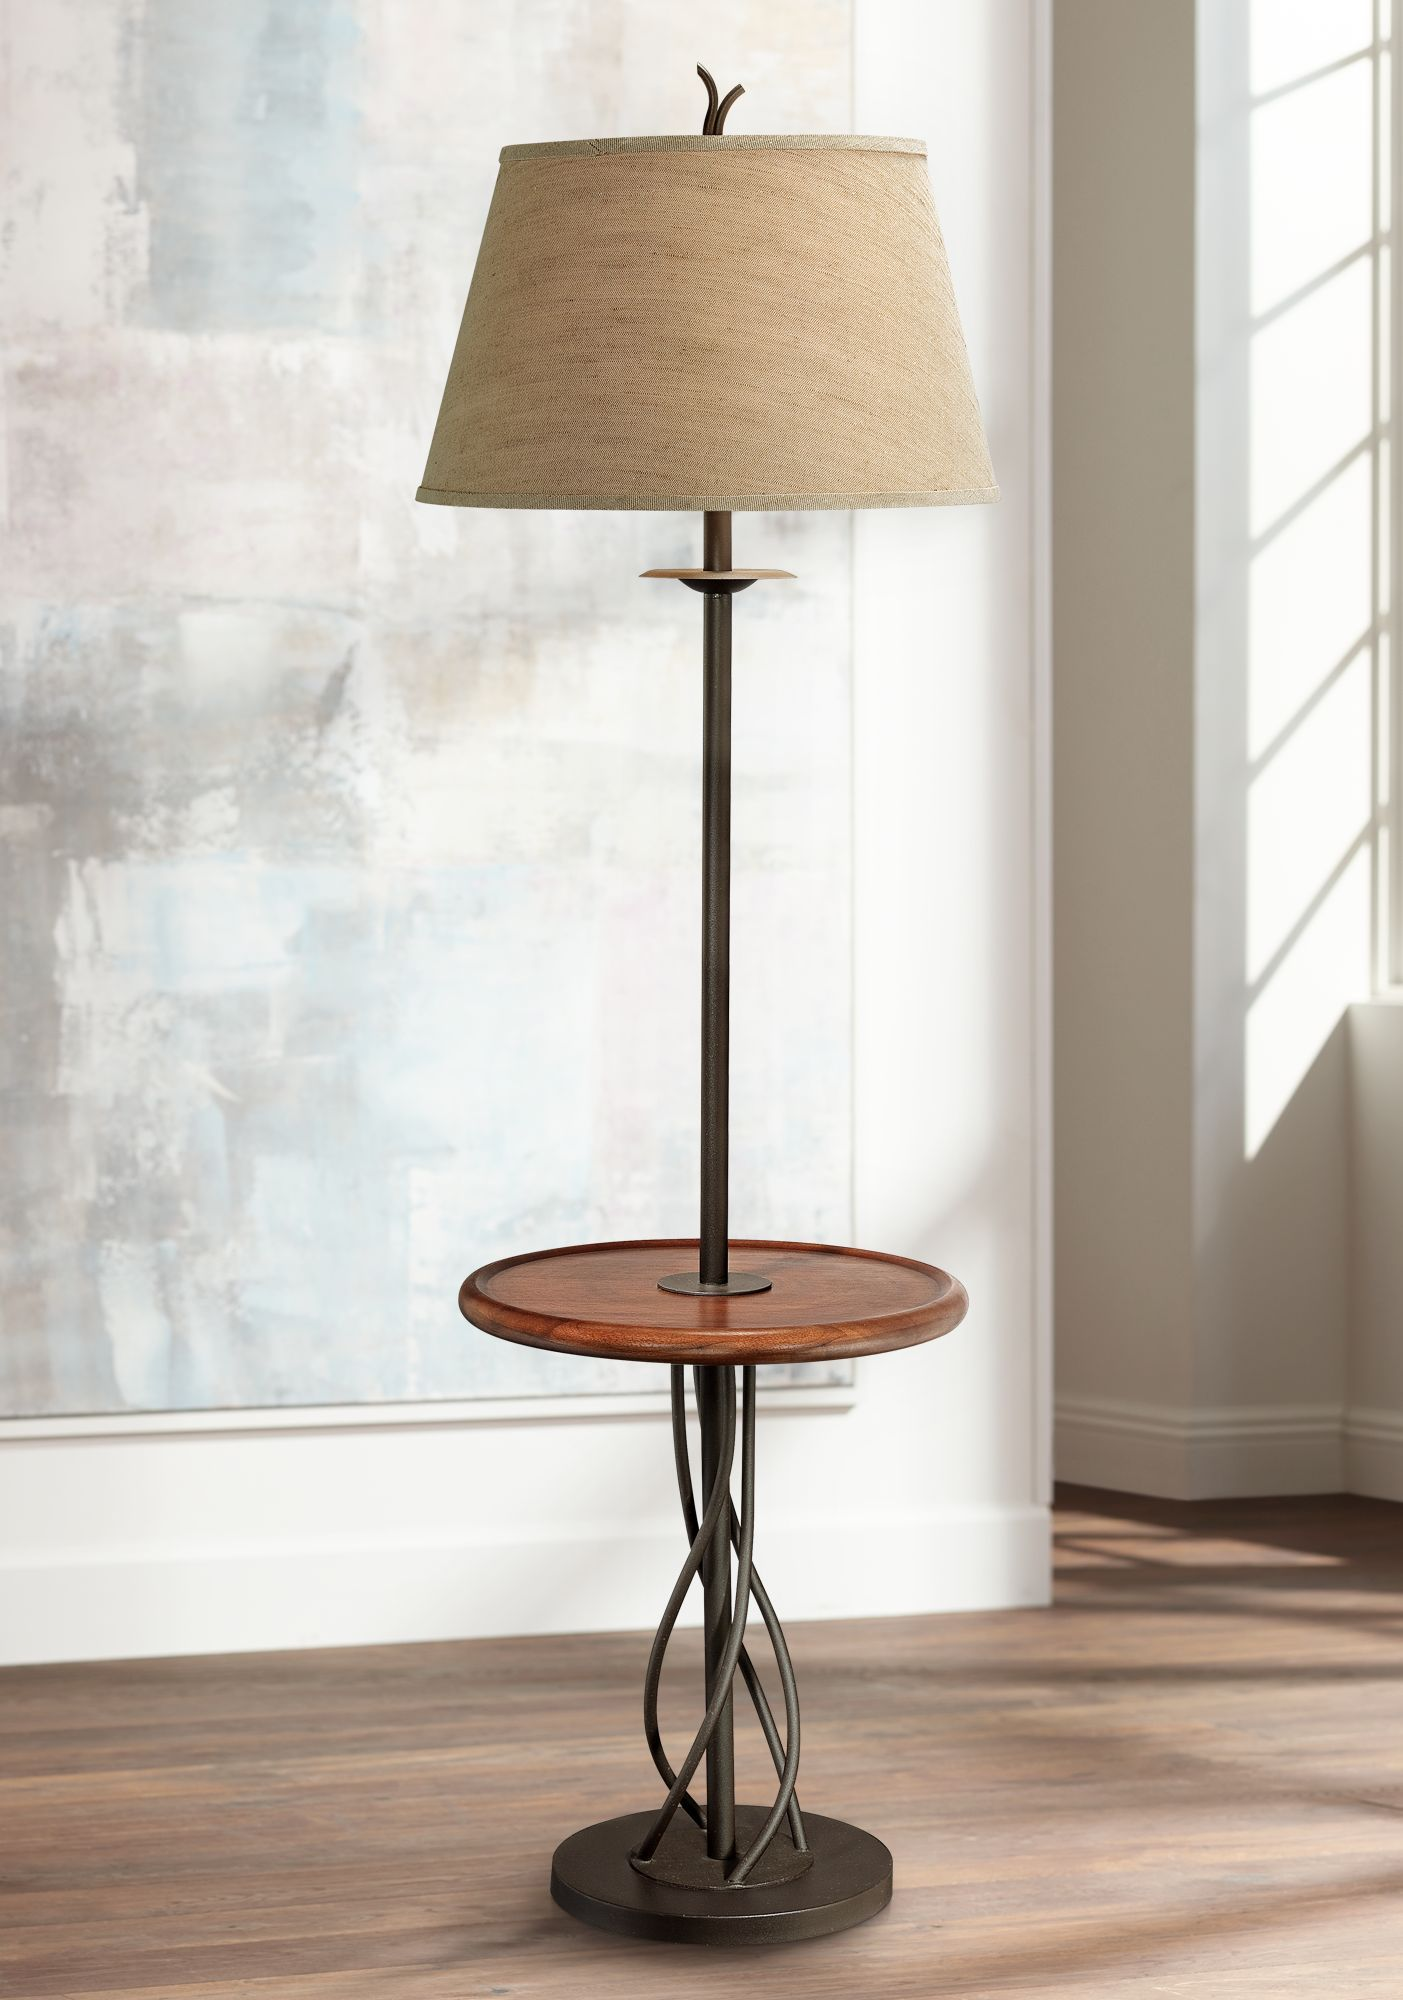 Tablett Tisch Stehlampe Eisen Twist Basis Holz Rustic Floor Lamps Floor Lamp Table Floor Lamp With Shelves